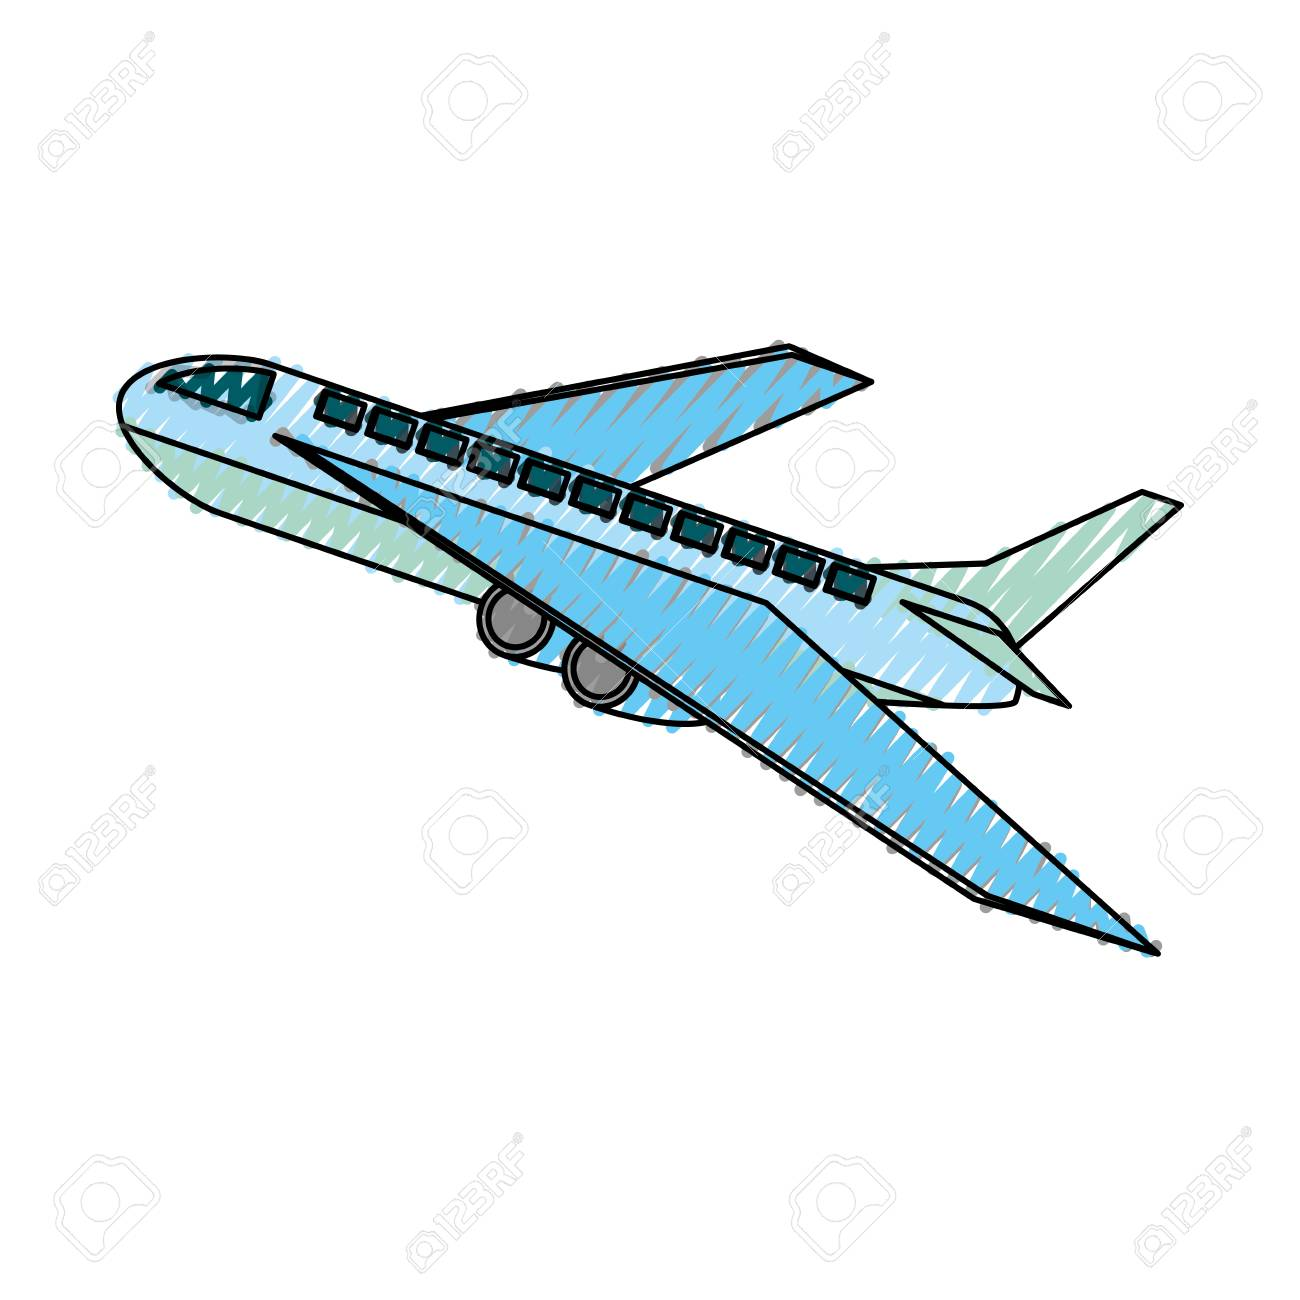 airplane taking off icon vector illustration graphic design royalty rh 123rf com airplane graphic design airplane graphics free